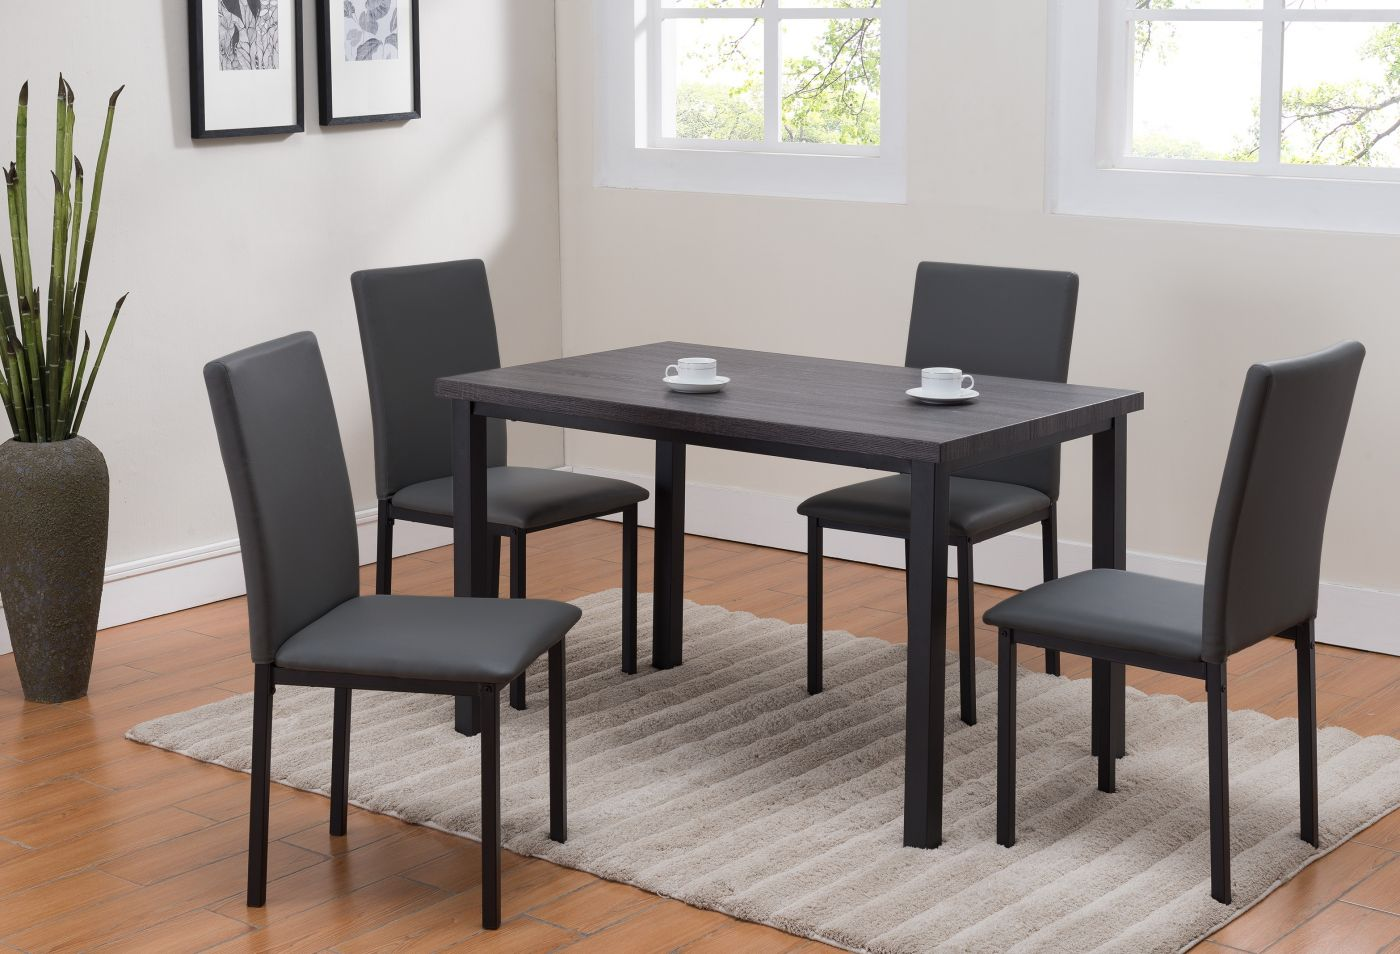 Orlo Gray and Black Dining Set